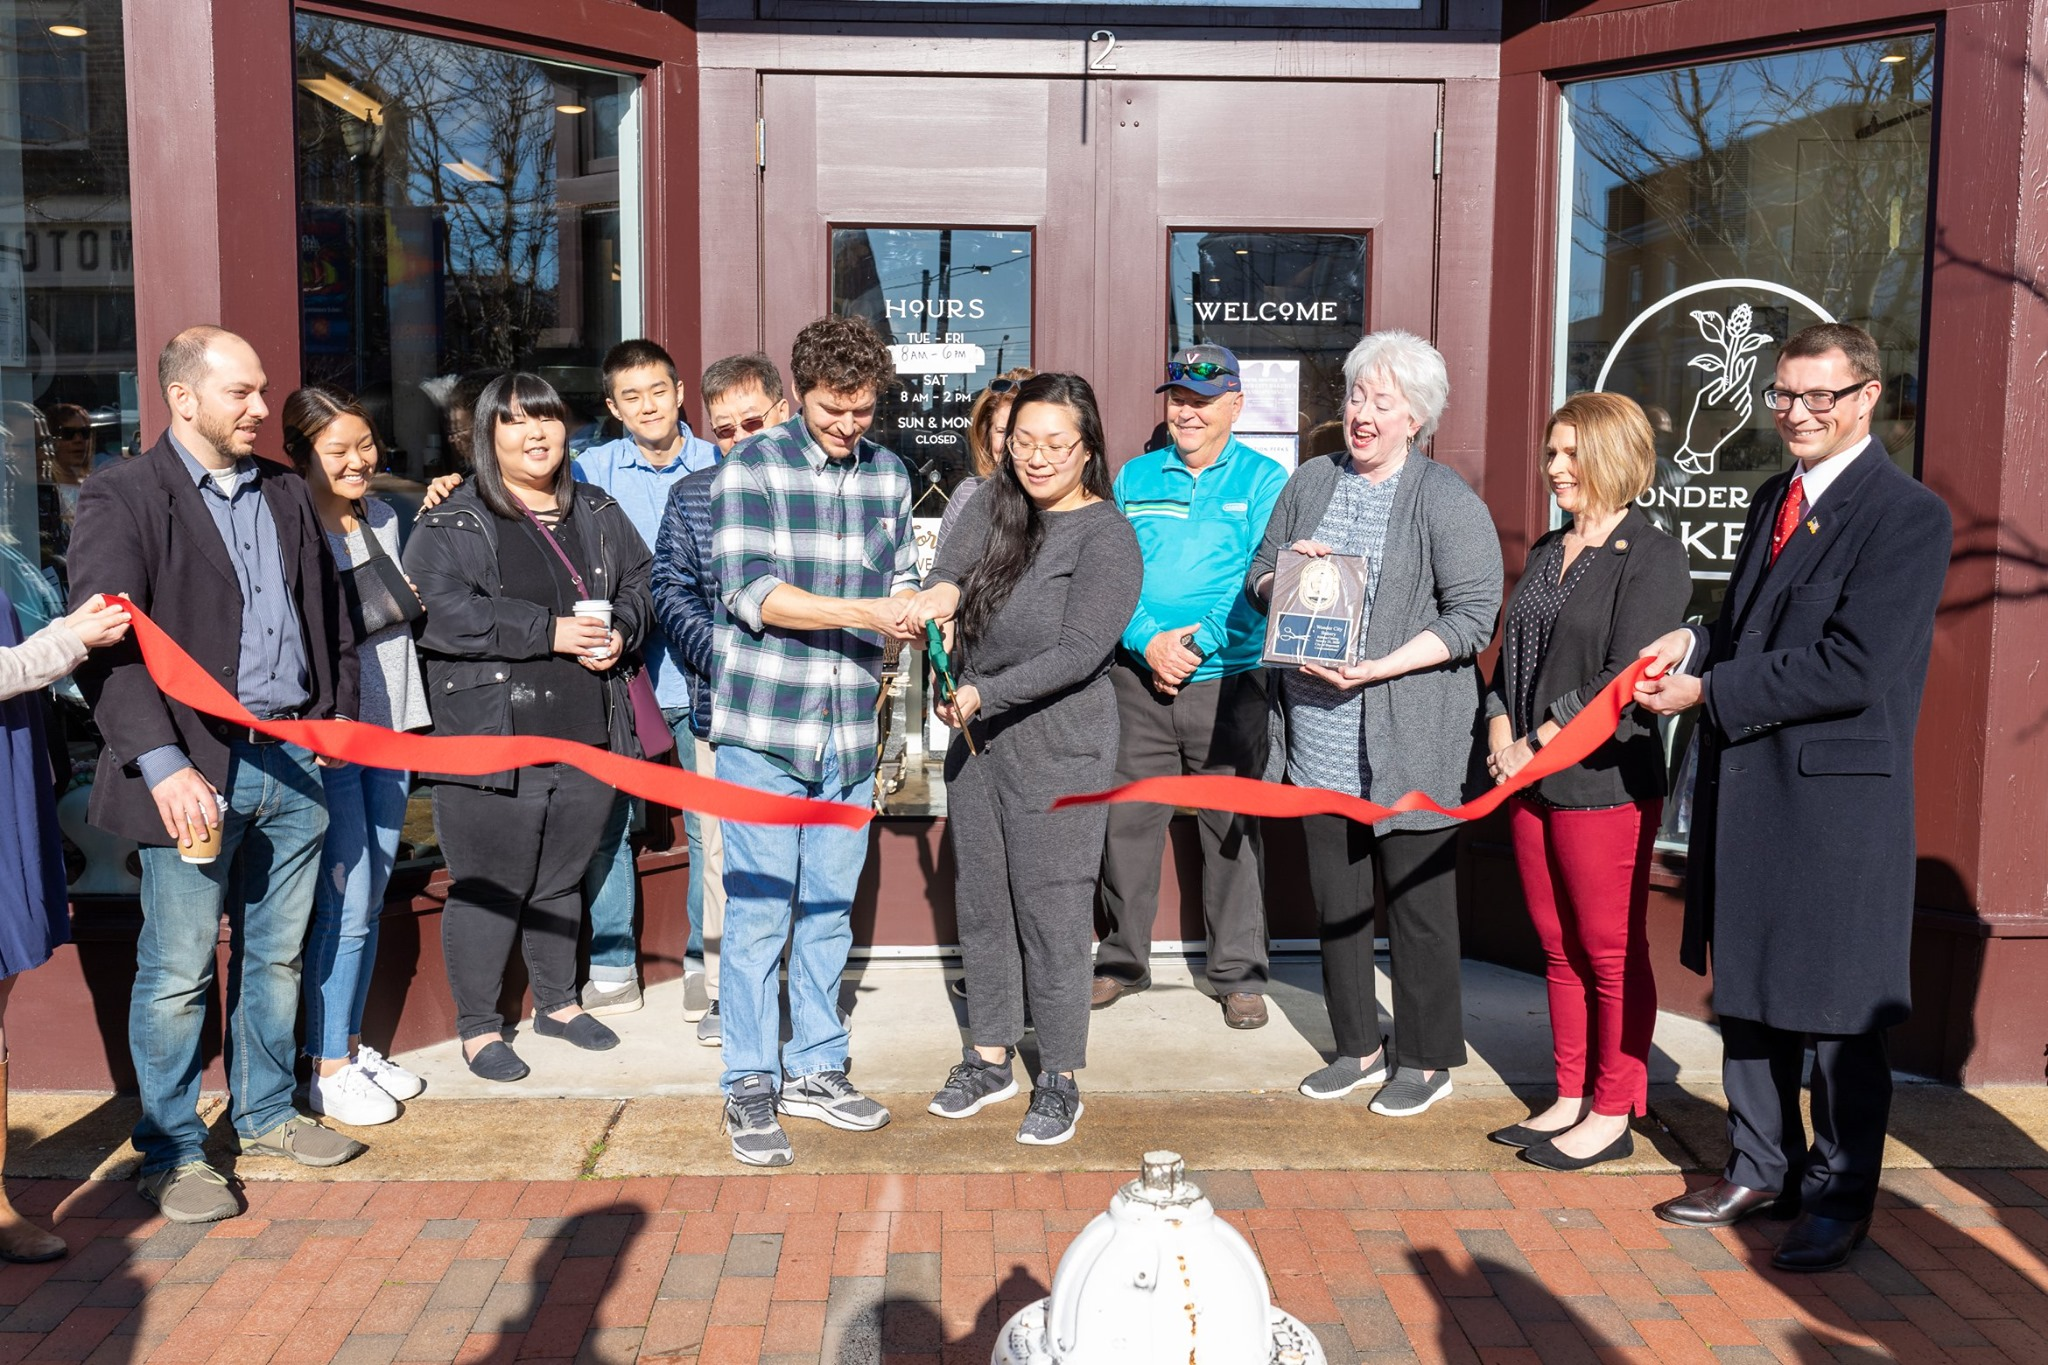 Wonder-City-Bakery-Ribbon-Cutting.jpg